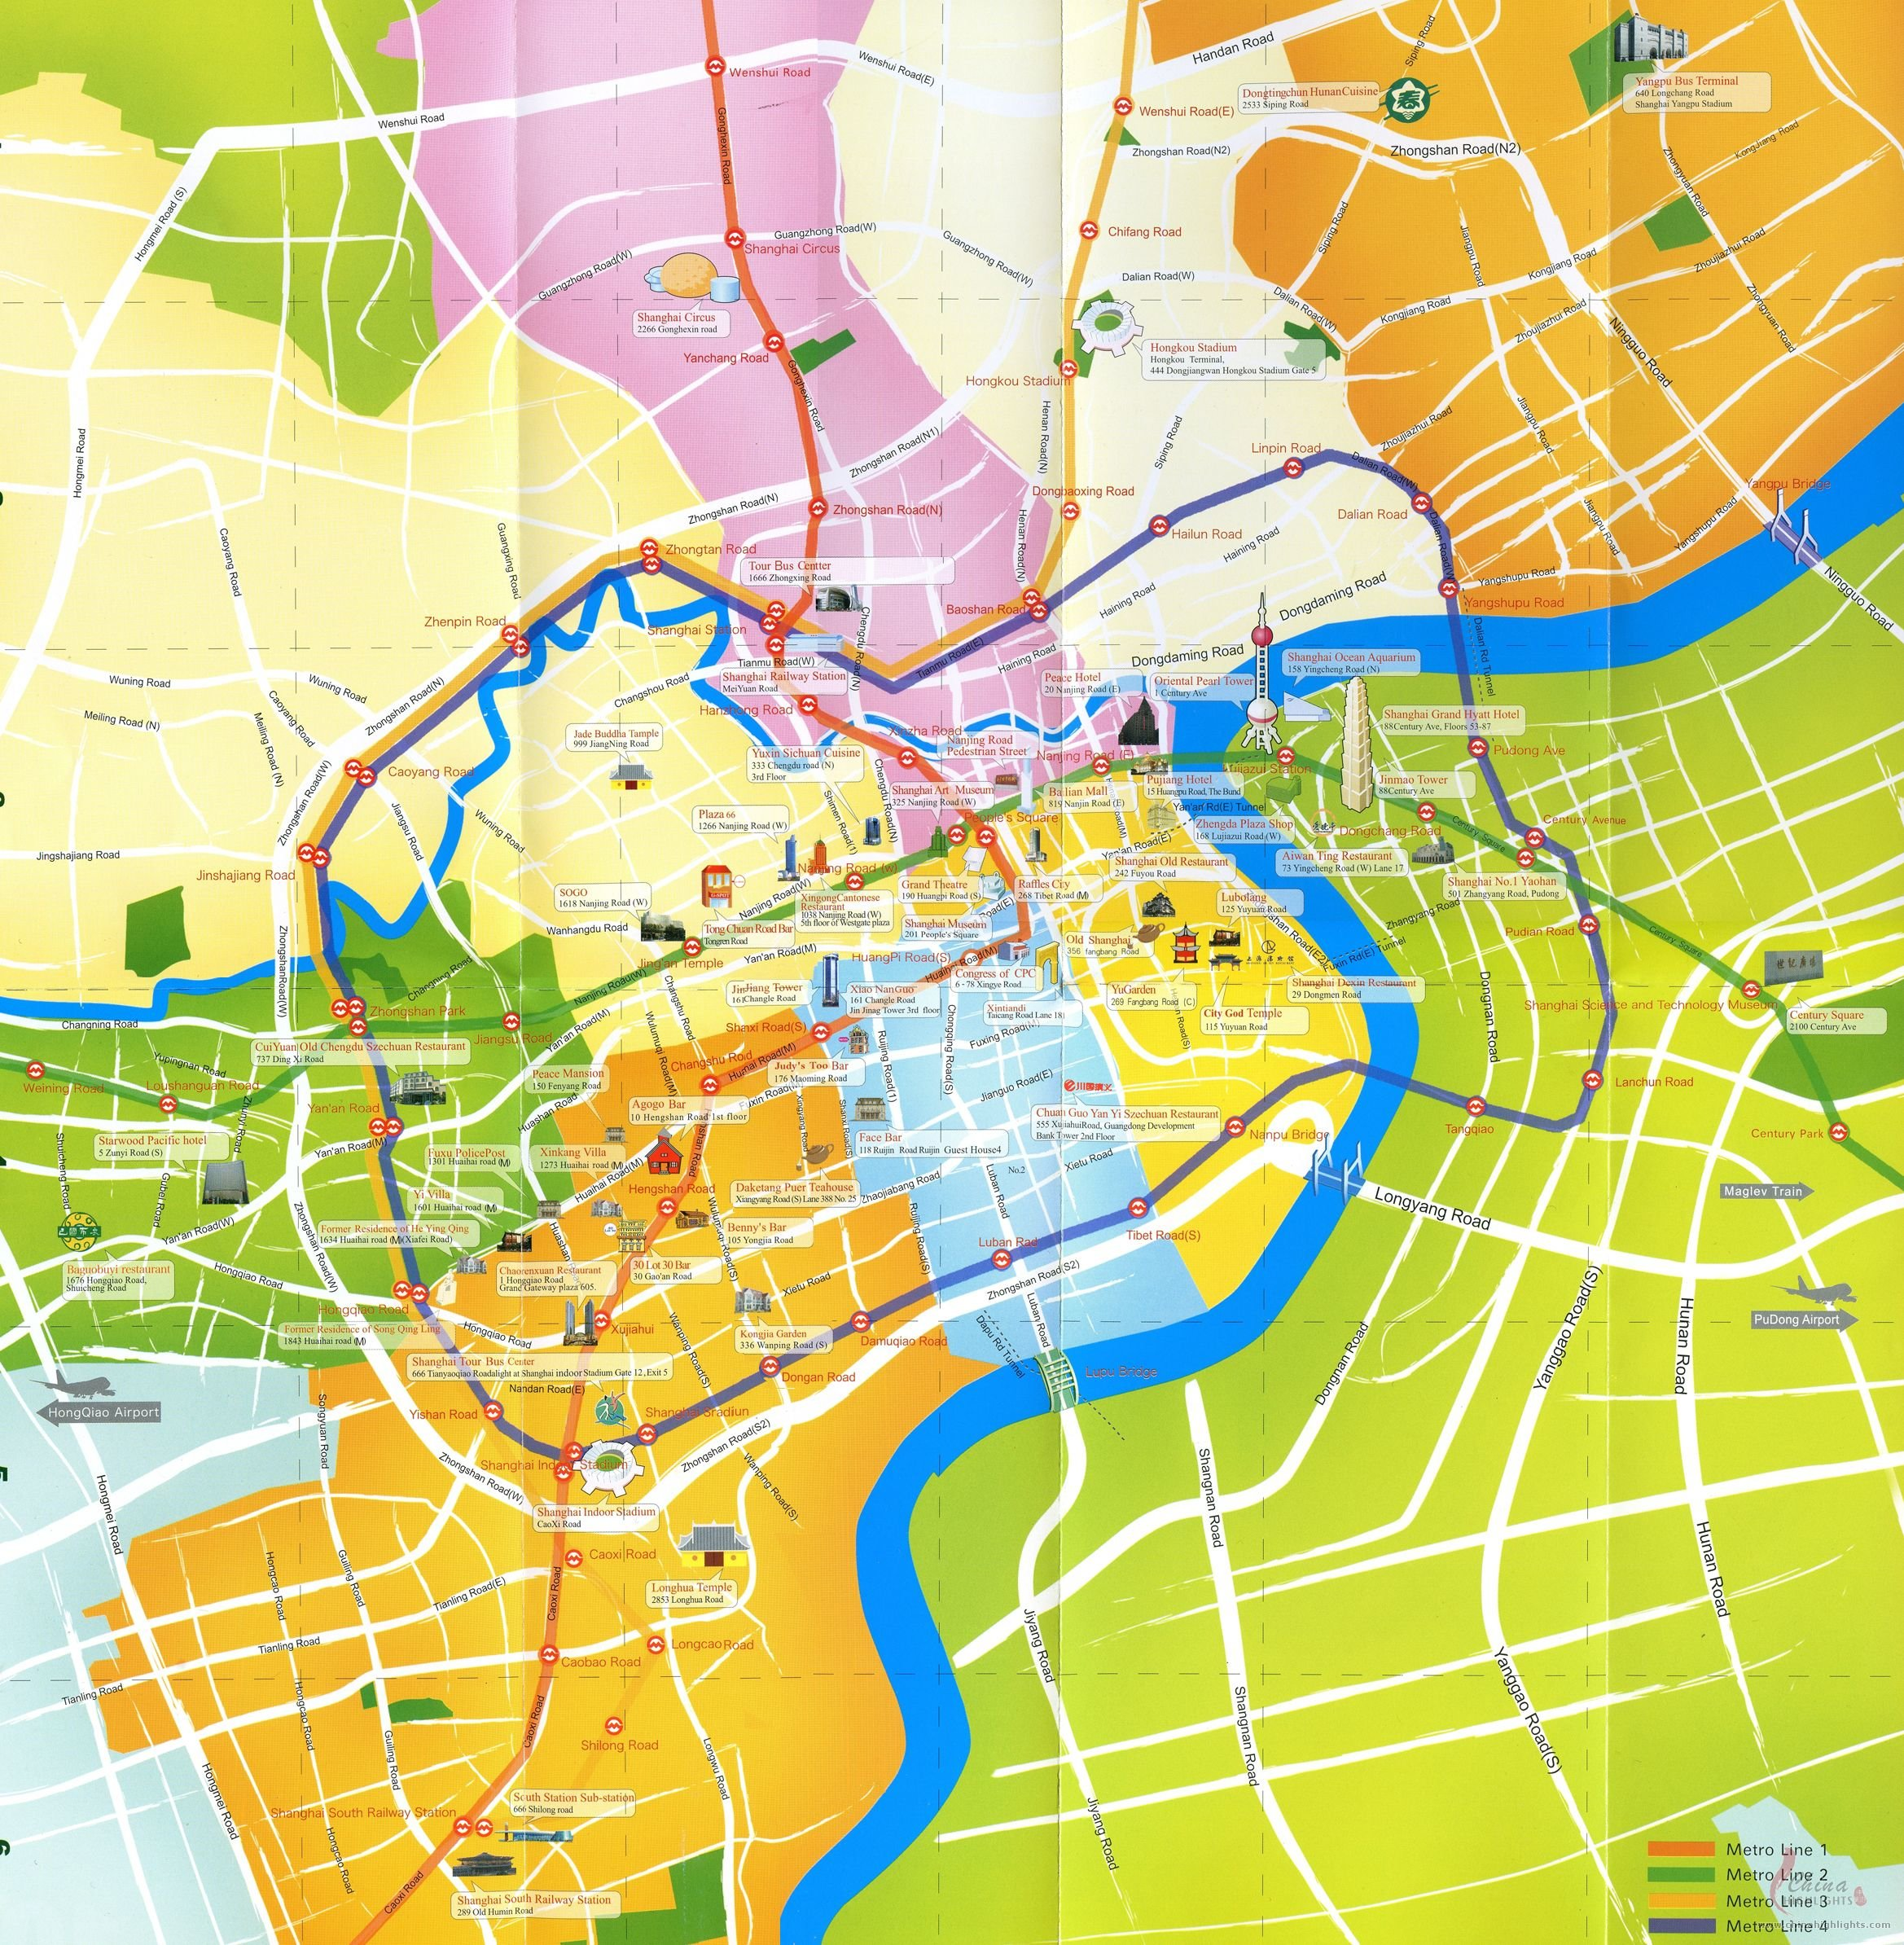 Shanghai Map, Map of Shanghai's Tourist Attractions and Subway